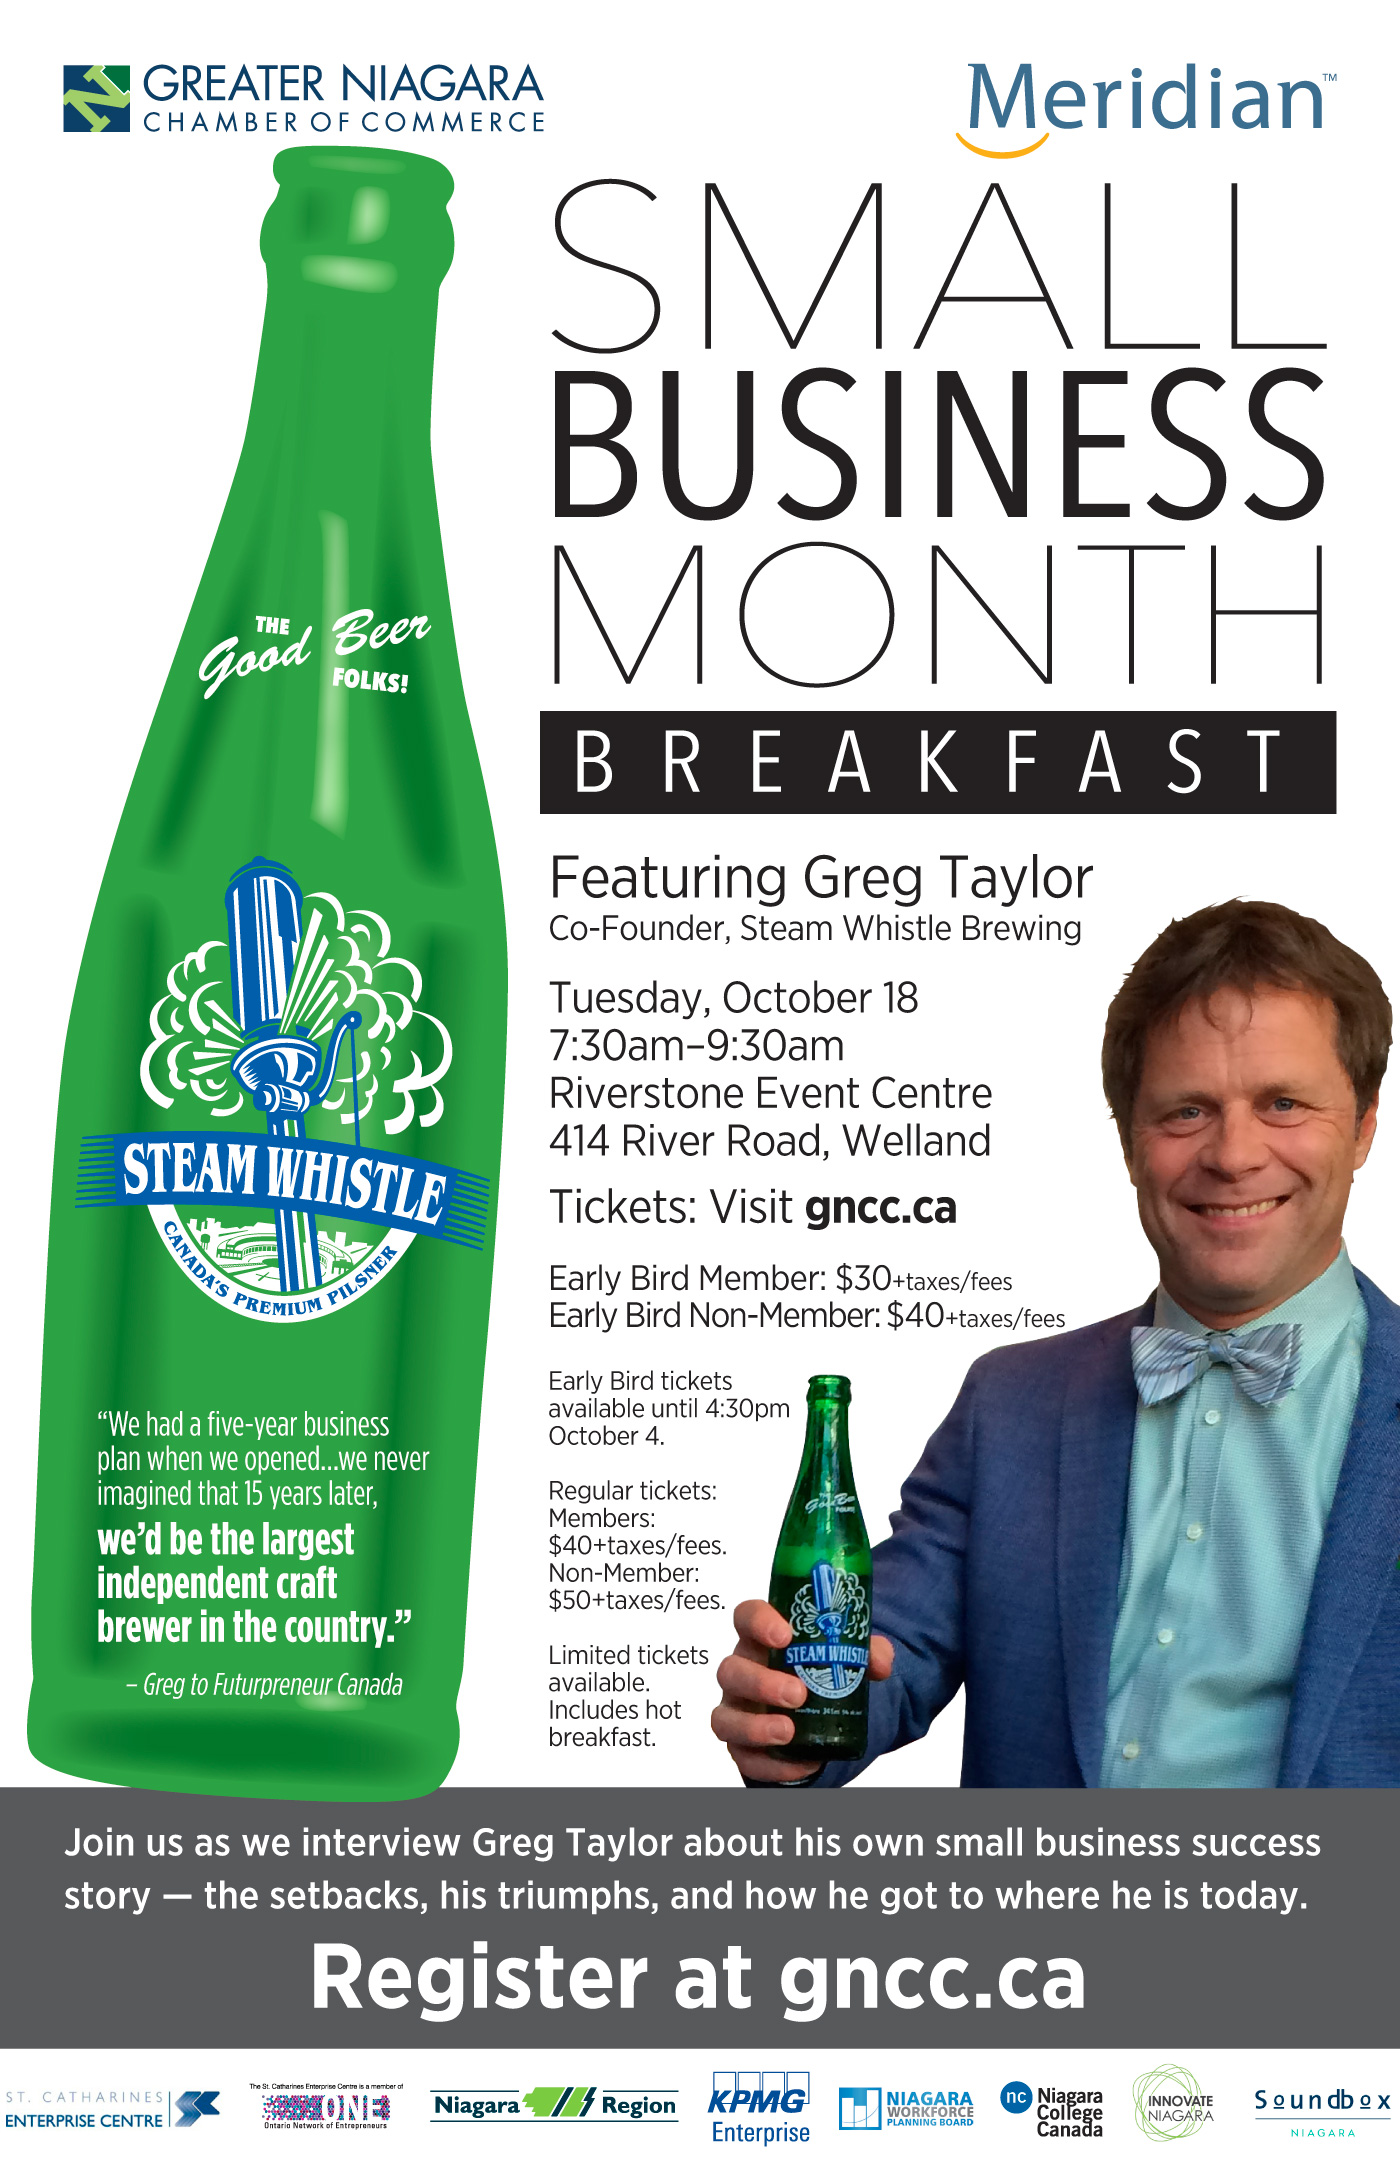 Featuring Greg Taylor, co-founder, Steam Whistle Brewing